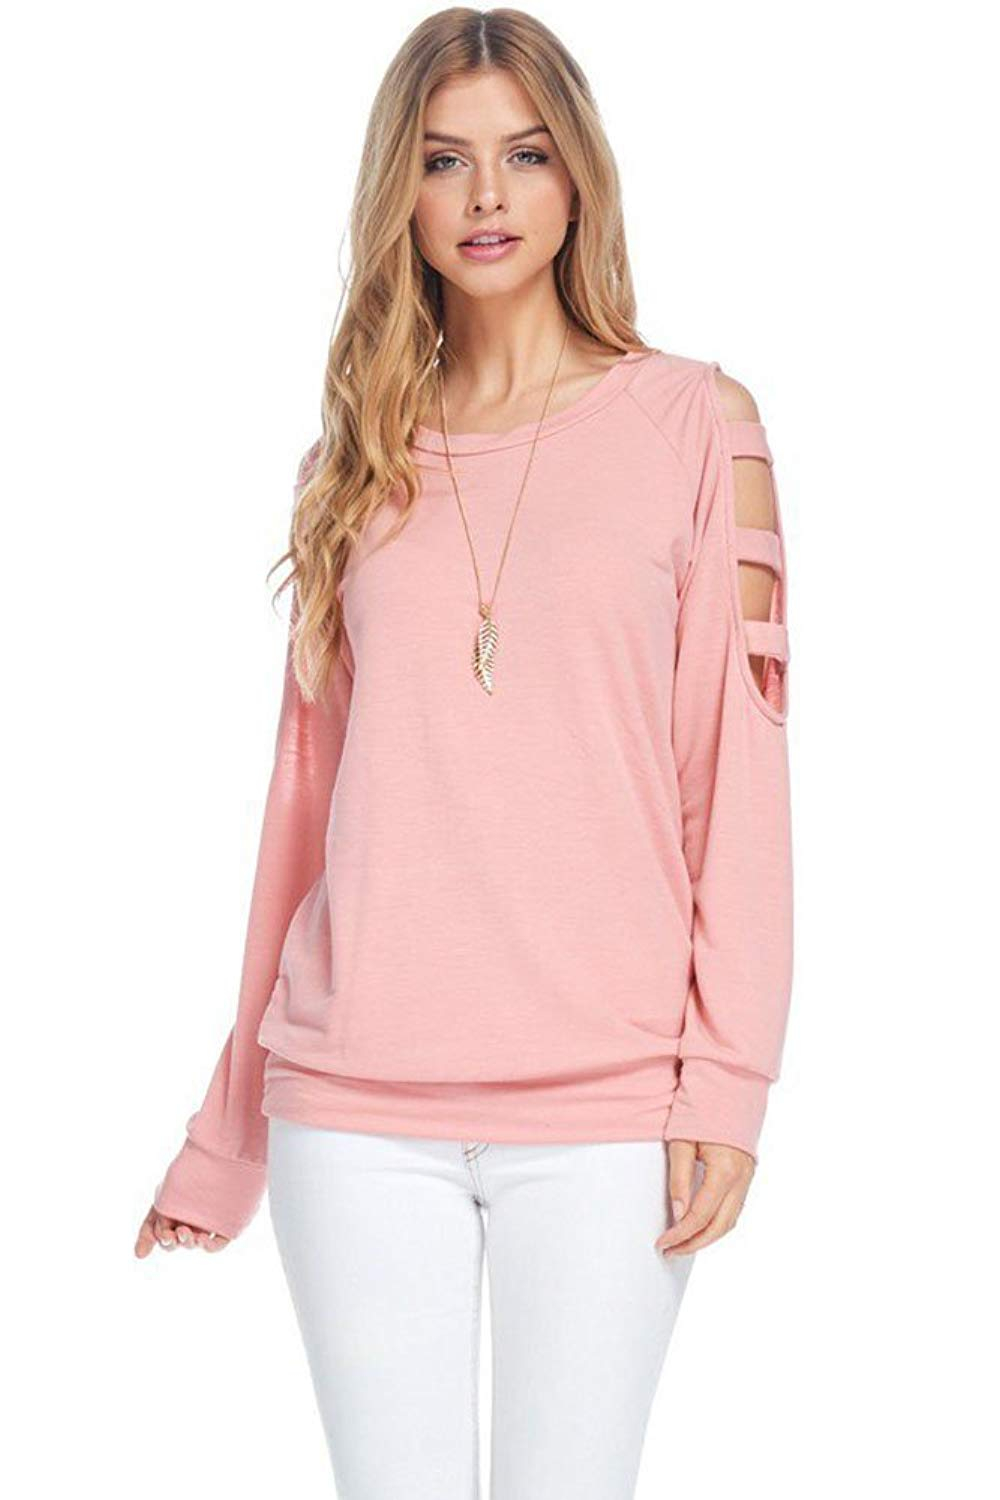 2eab7388169eae Get Quotations · Modern Kiwi Ally Cold Shoulder Long Sleeve Ladder Cutout  Sweater Top (S-XL)